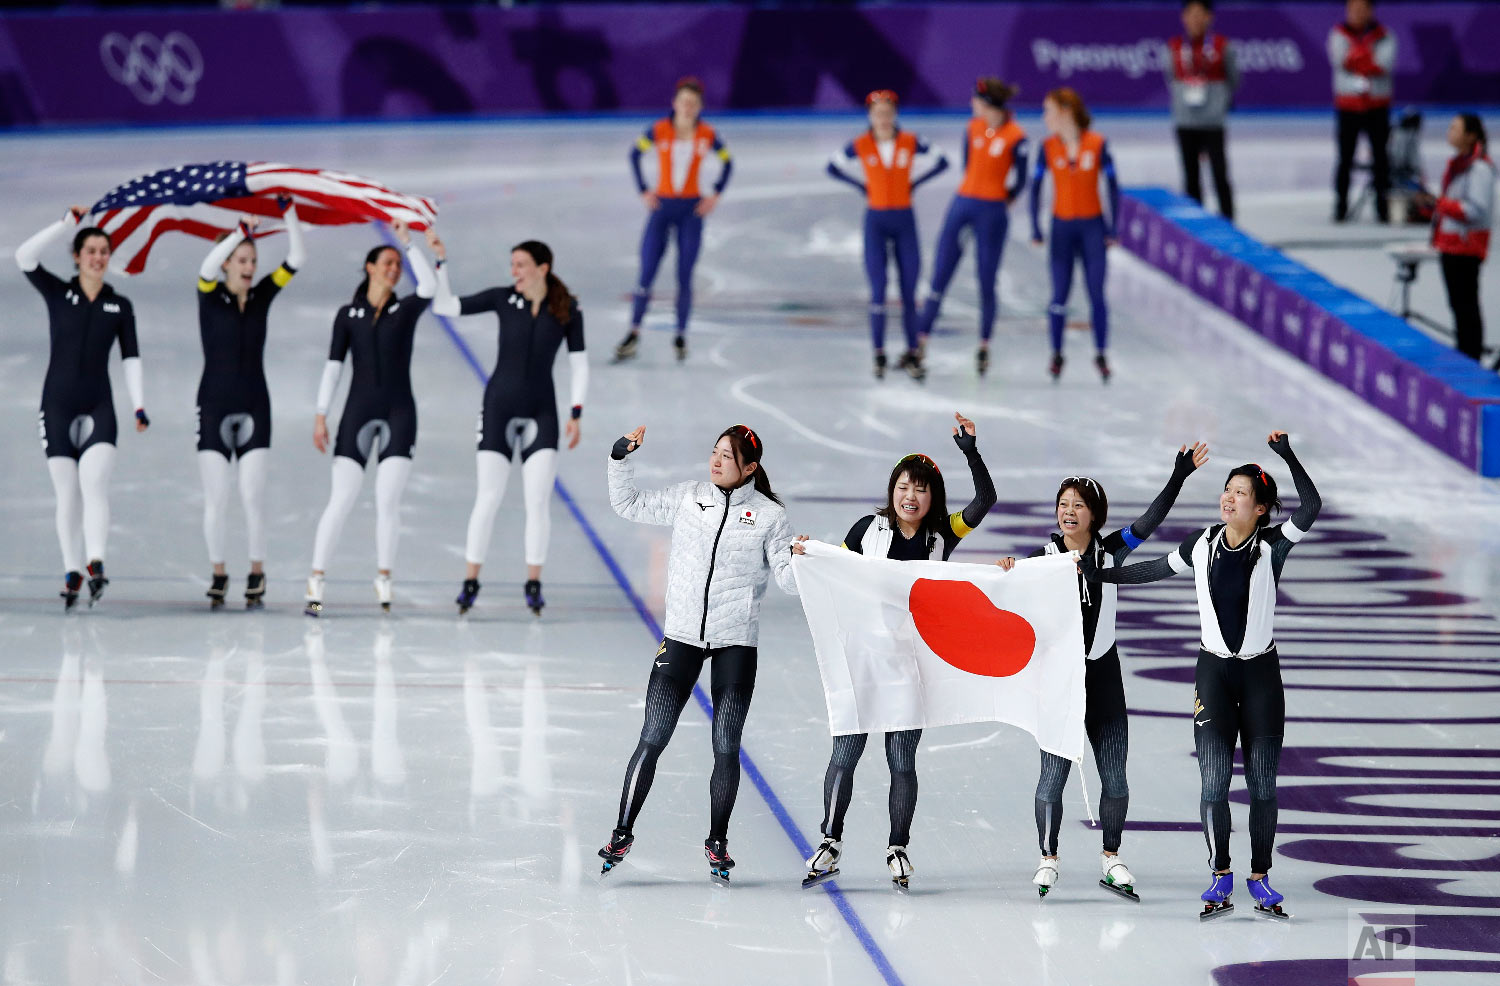 Gold medalist team Japan, front, and bronze medalist team U.S.A. celebrate, while silver medalist team Netherlands appears dejected after the women's team pursuit speedskating race at the Gangneung Oval at the 2018 Winter Olympics in Gangneung, South Korea, Wednesday, Feb. 21, 2018. (AP Photo/Vadim Ghirda)